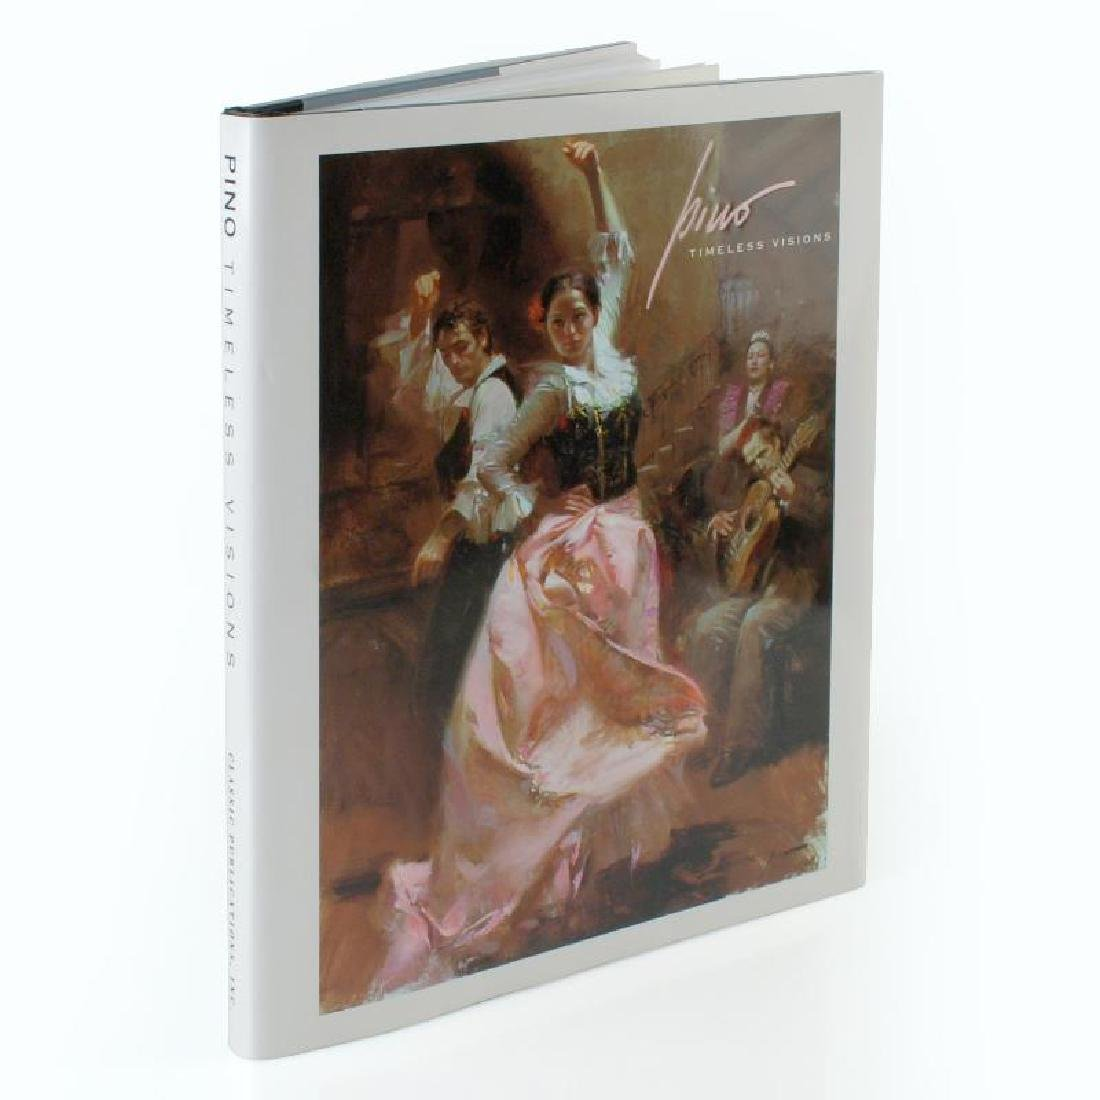 """""""Pino: Timeless Visions""""(2007) Fine Art Book with Text"""